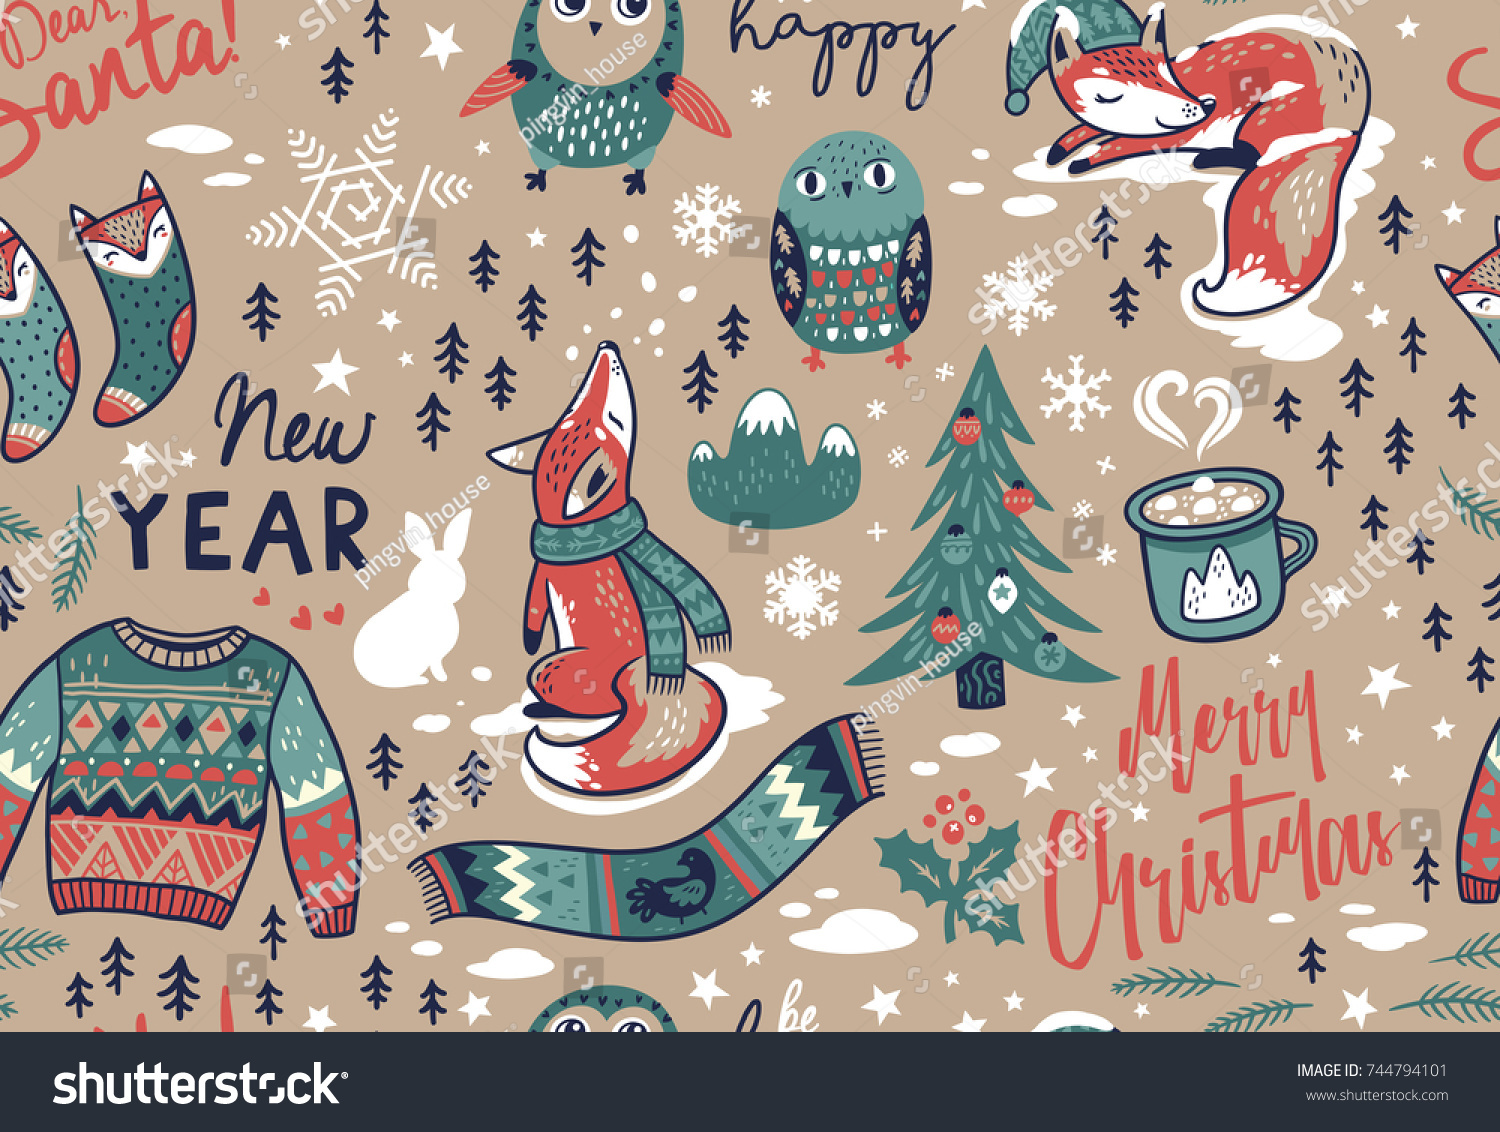 Seamless pattern with winter elements and text in cartoon style. Fox and owls, sweater and scarf, coffee and socks. Lovely endless background for meeting New year and Christmas.